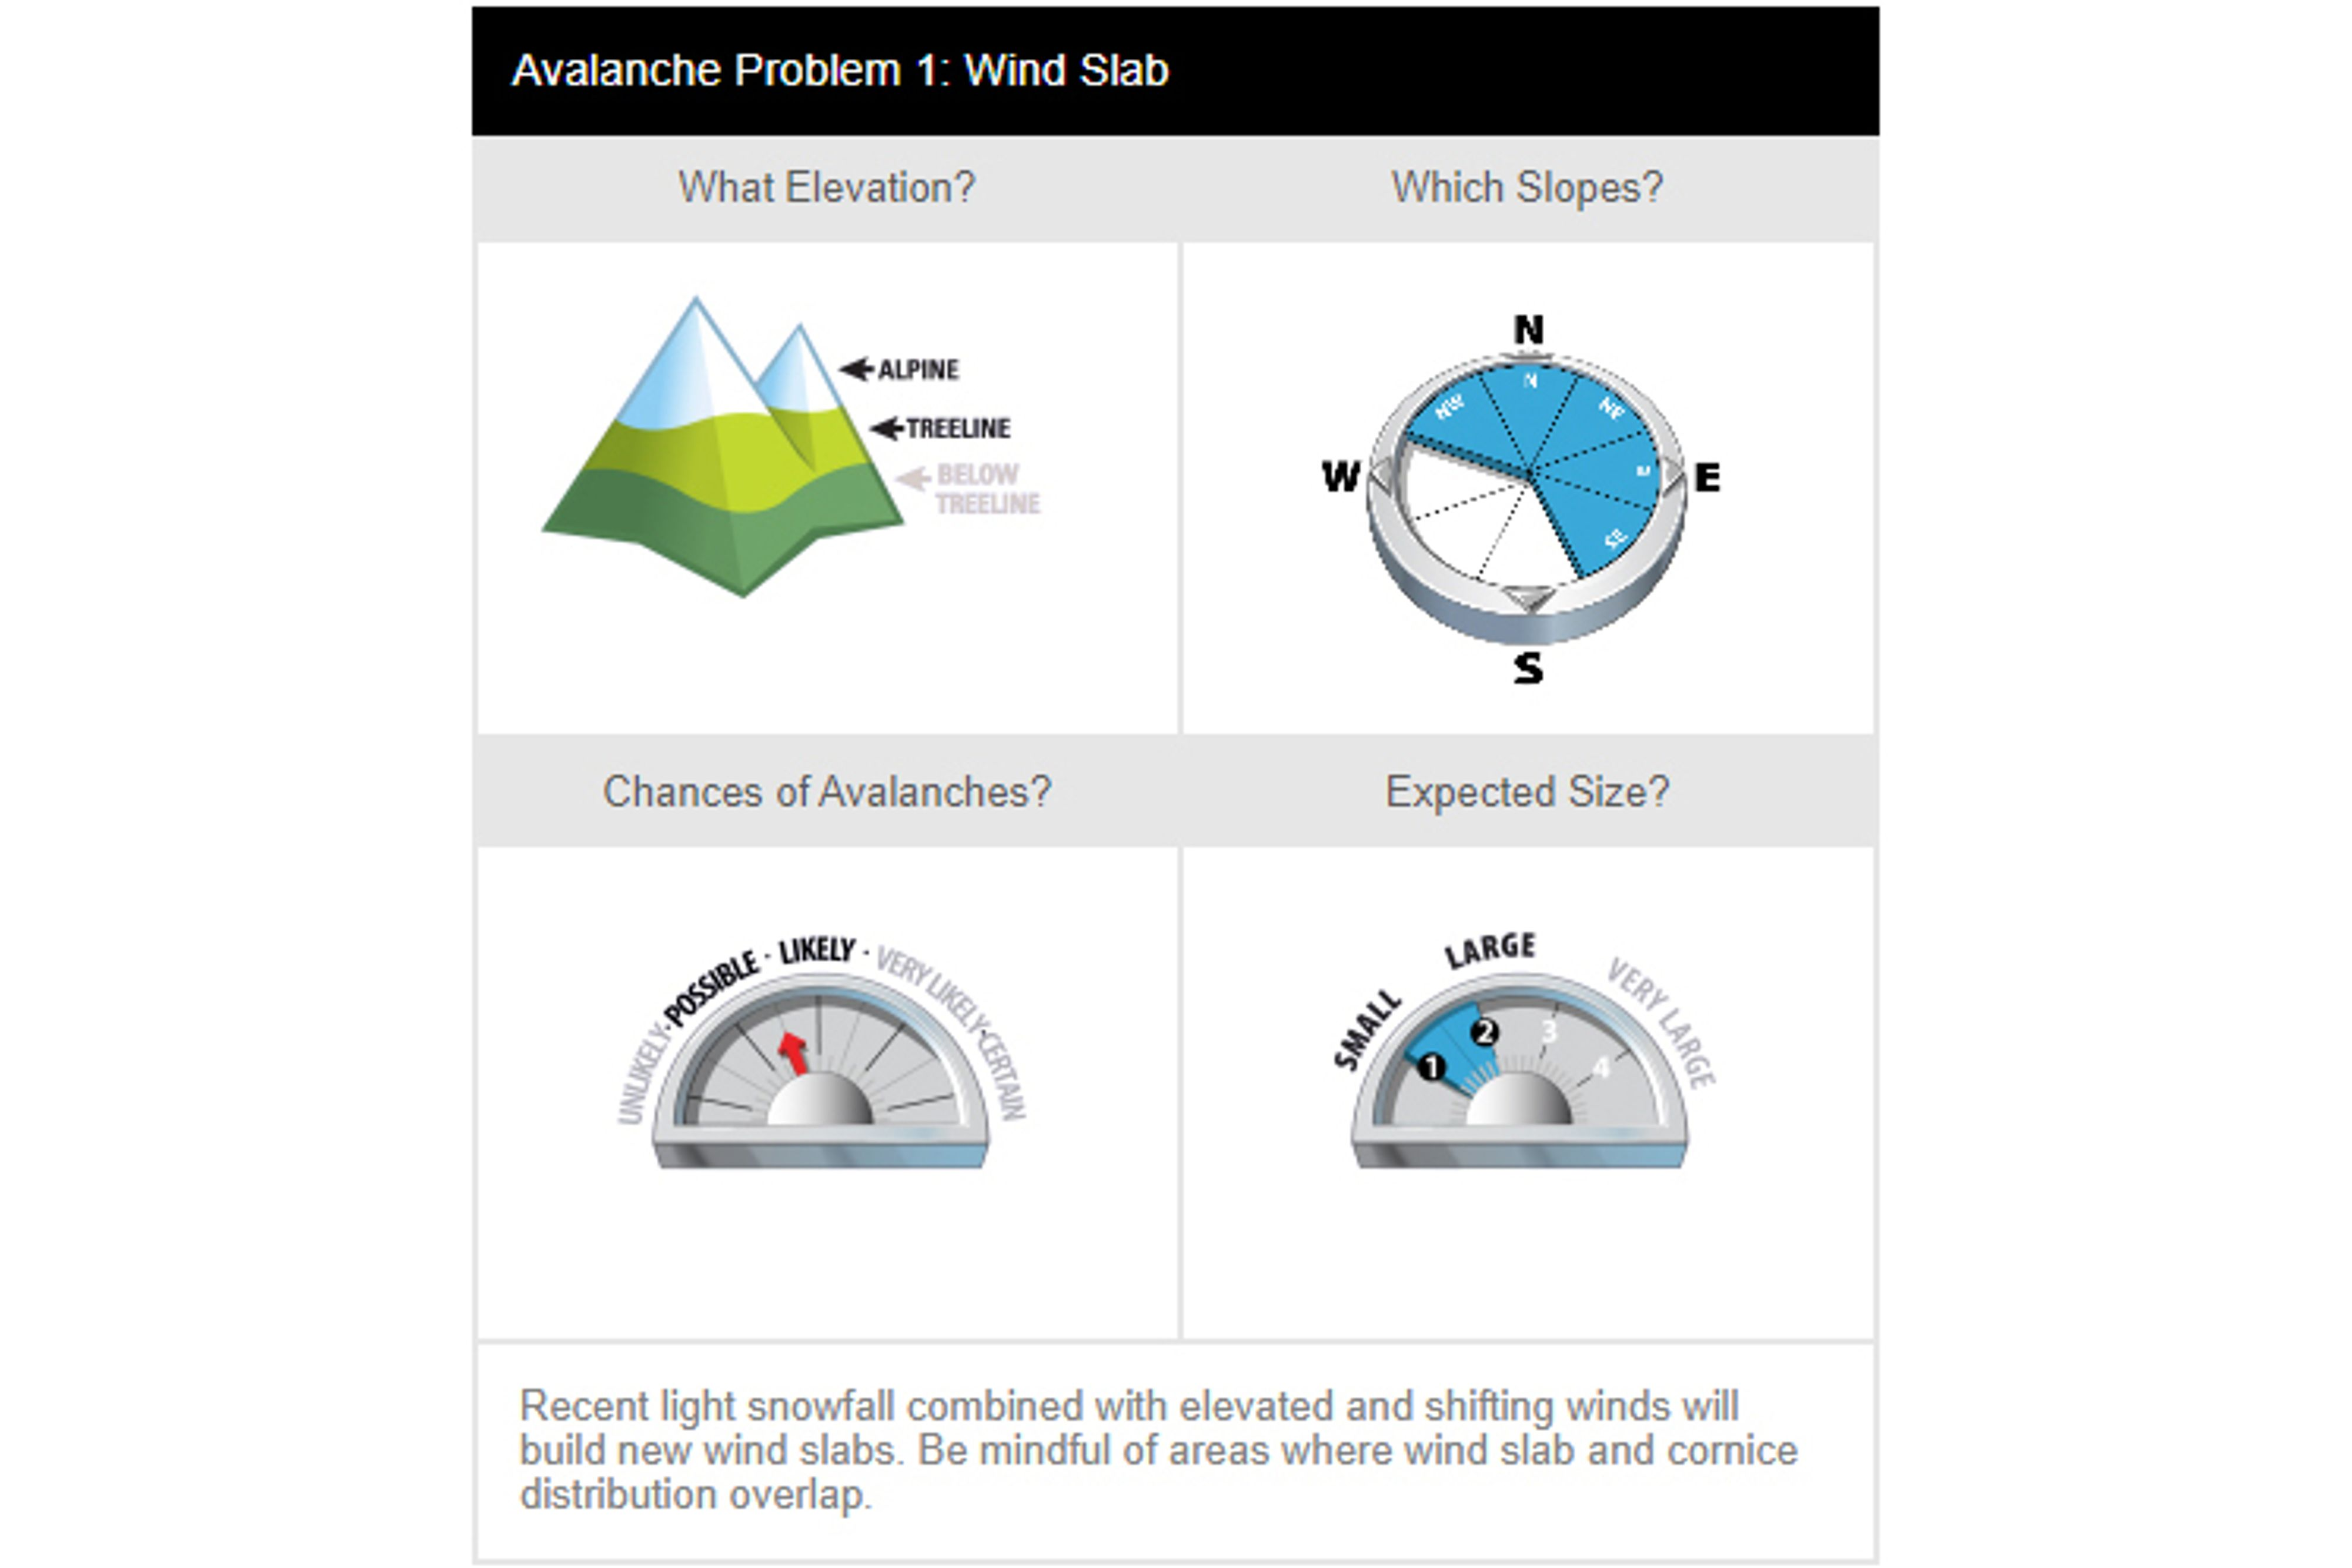 Click on the different elements to learn more about how avalanche problems are presented in the forecast.